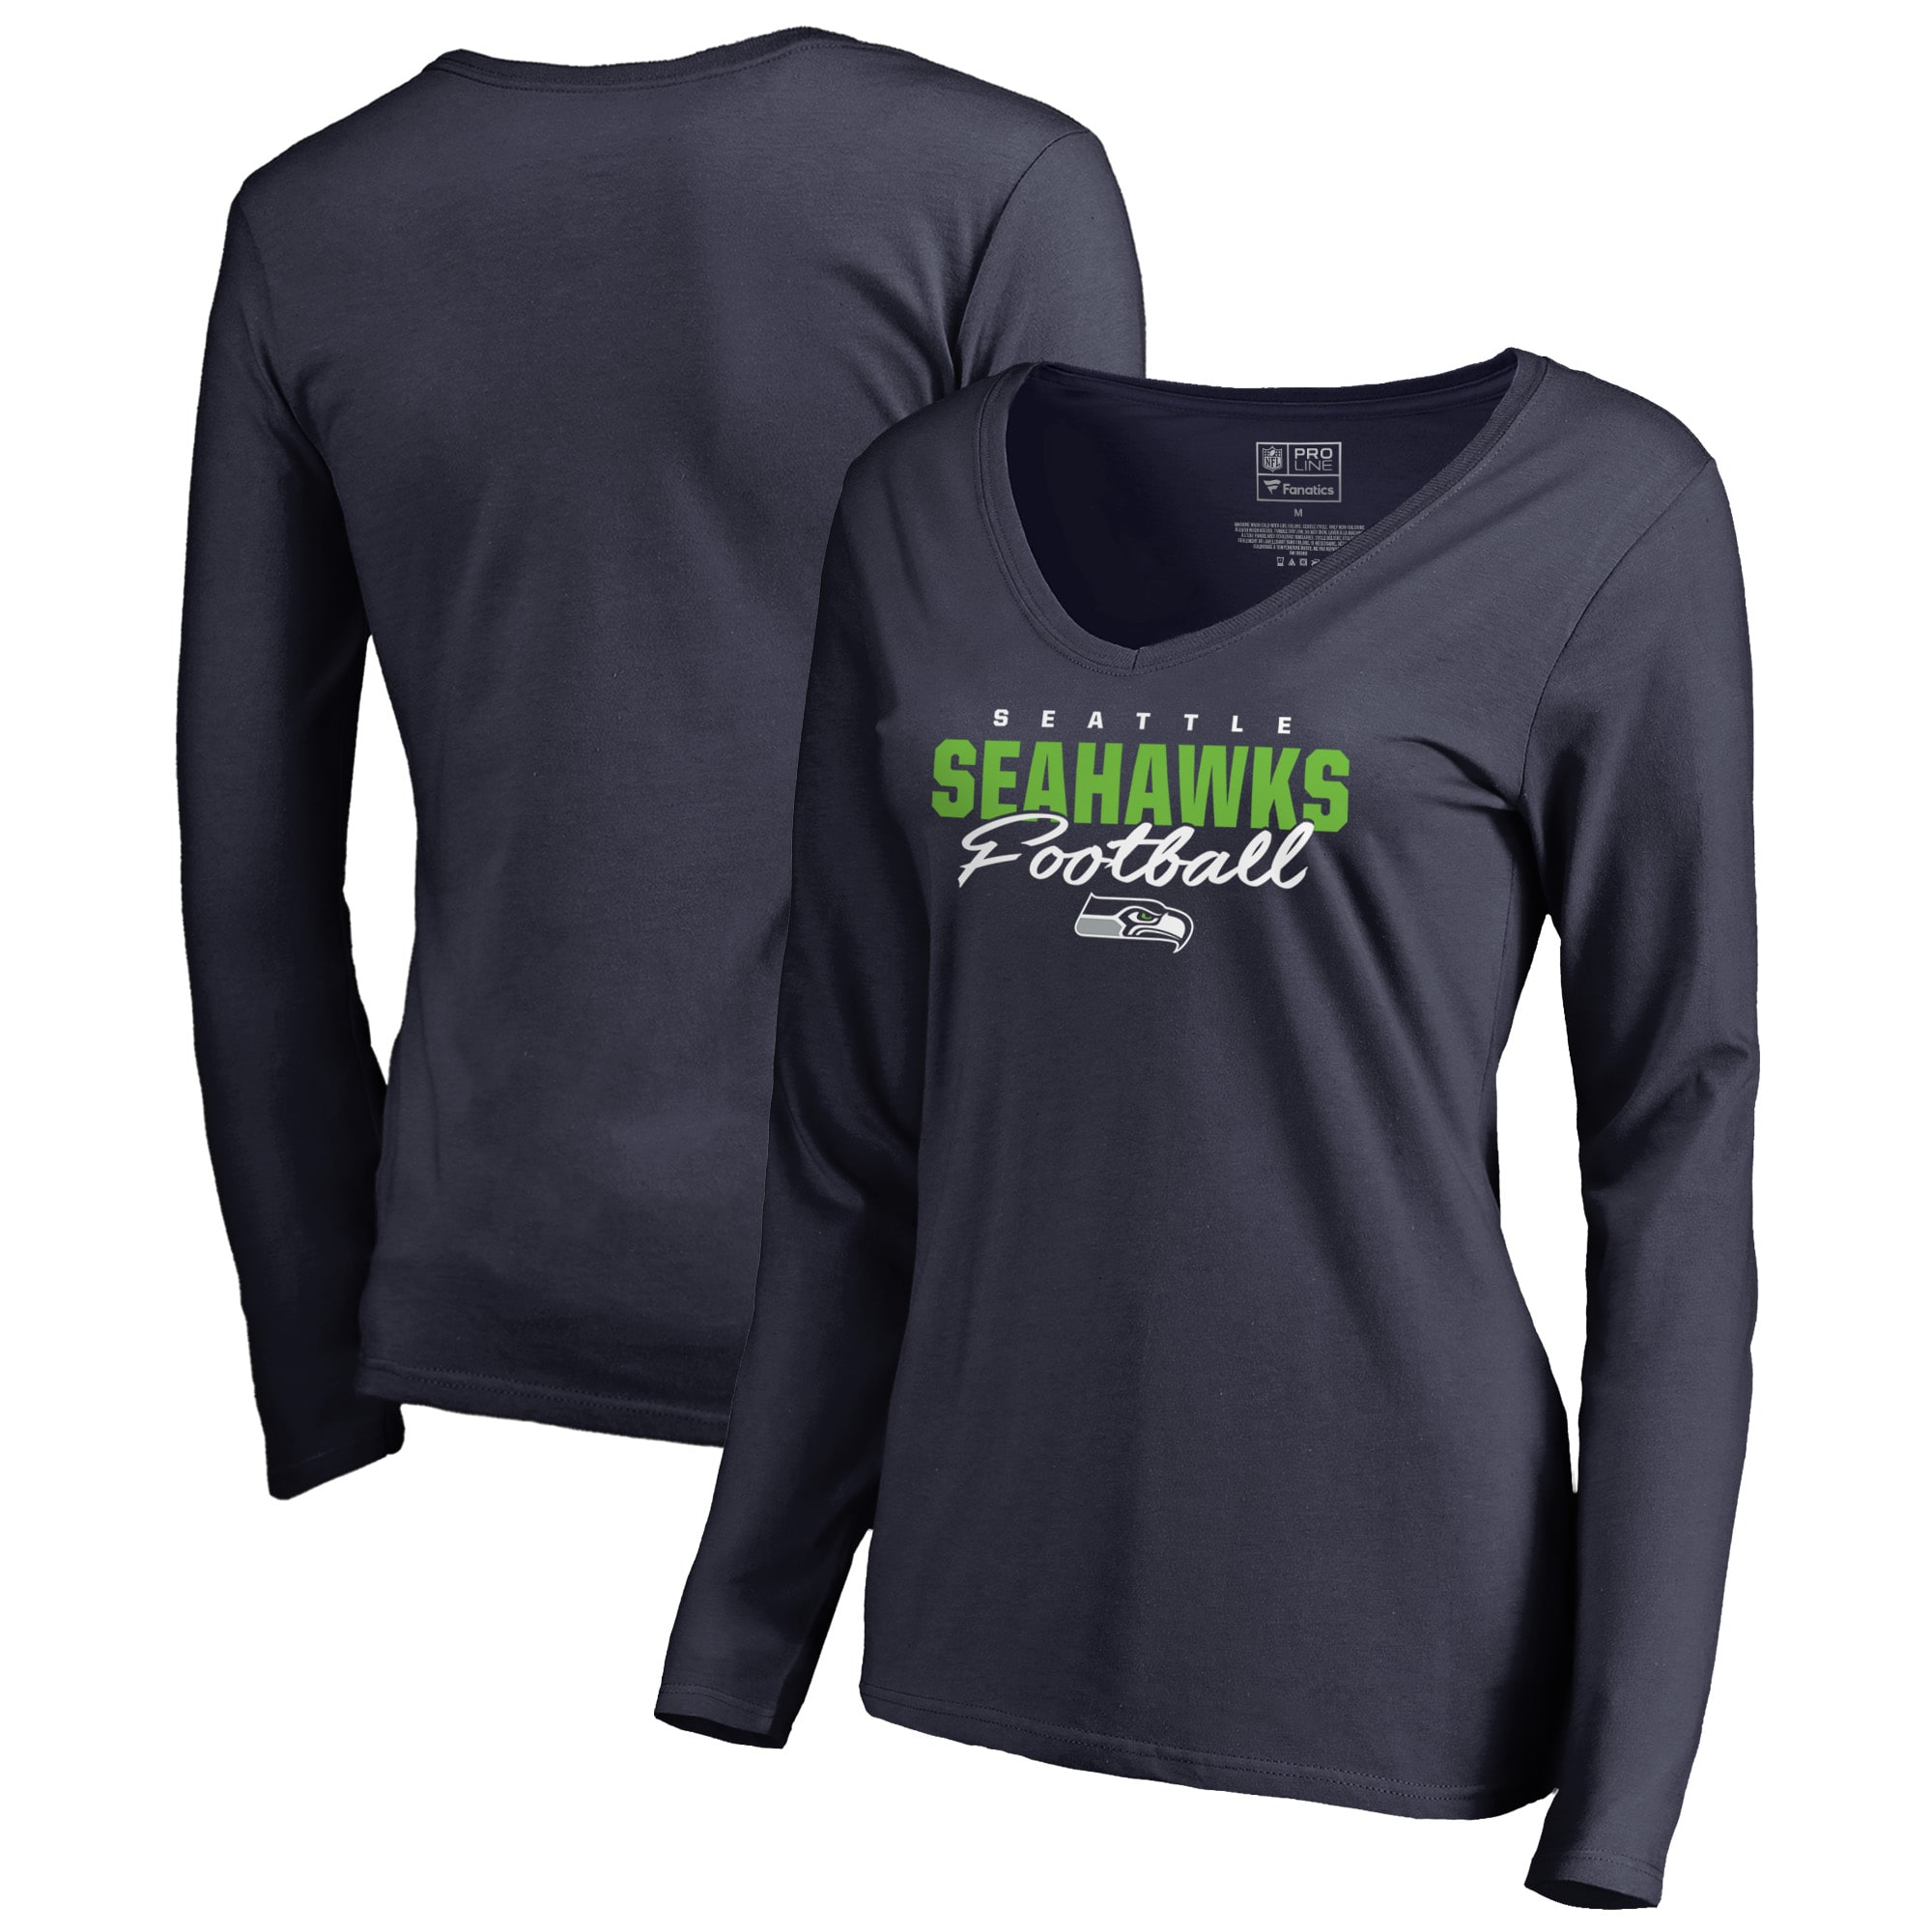 Seattle Seahawks NFL Pro Line by Fanatics Branded Women's Iconic Collection Script Assist Long Sleeve V-Neck T-Shirt - College Navy